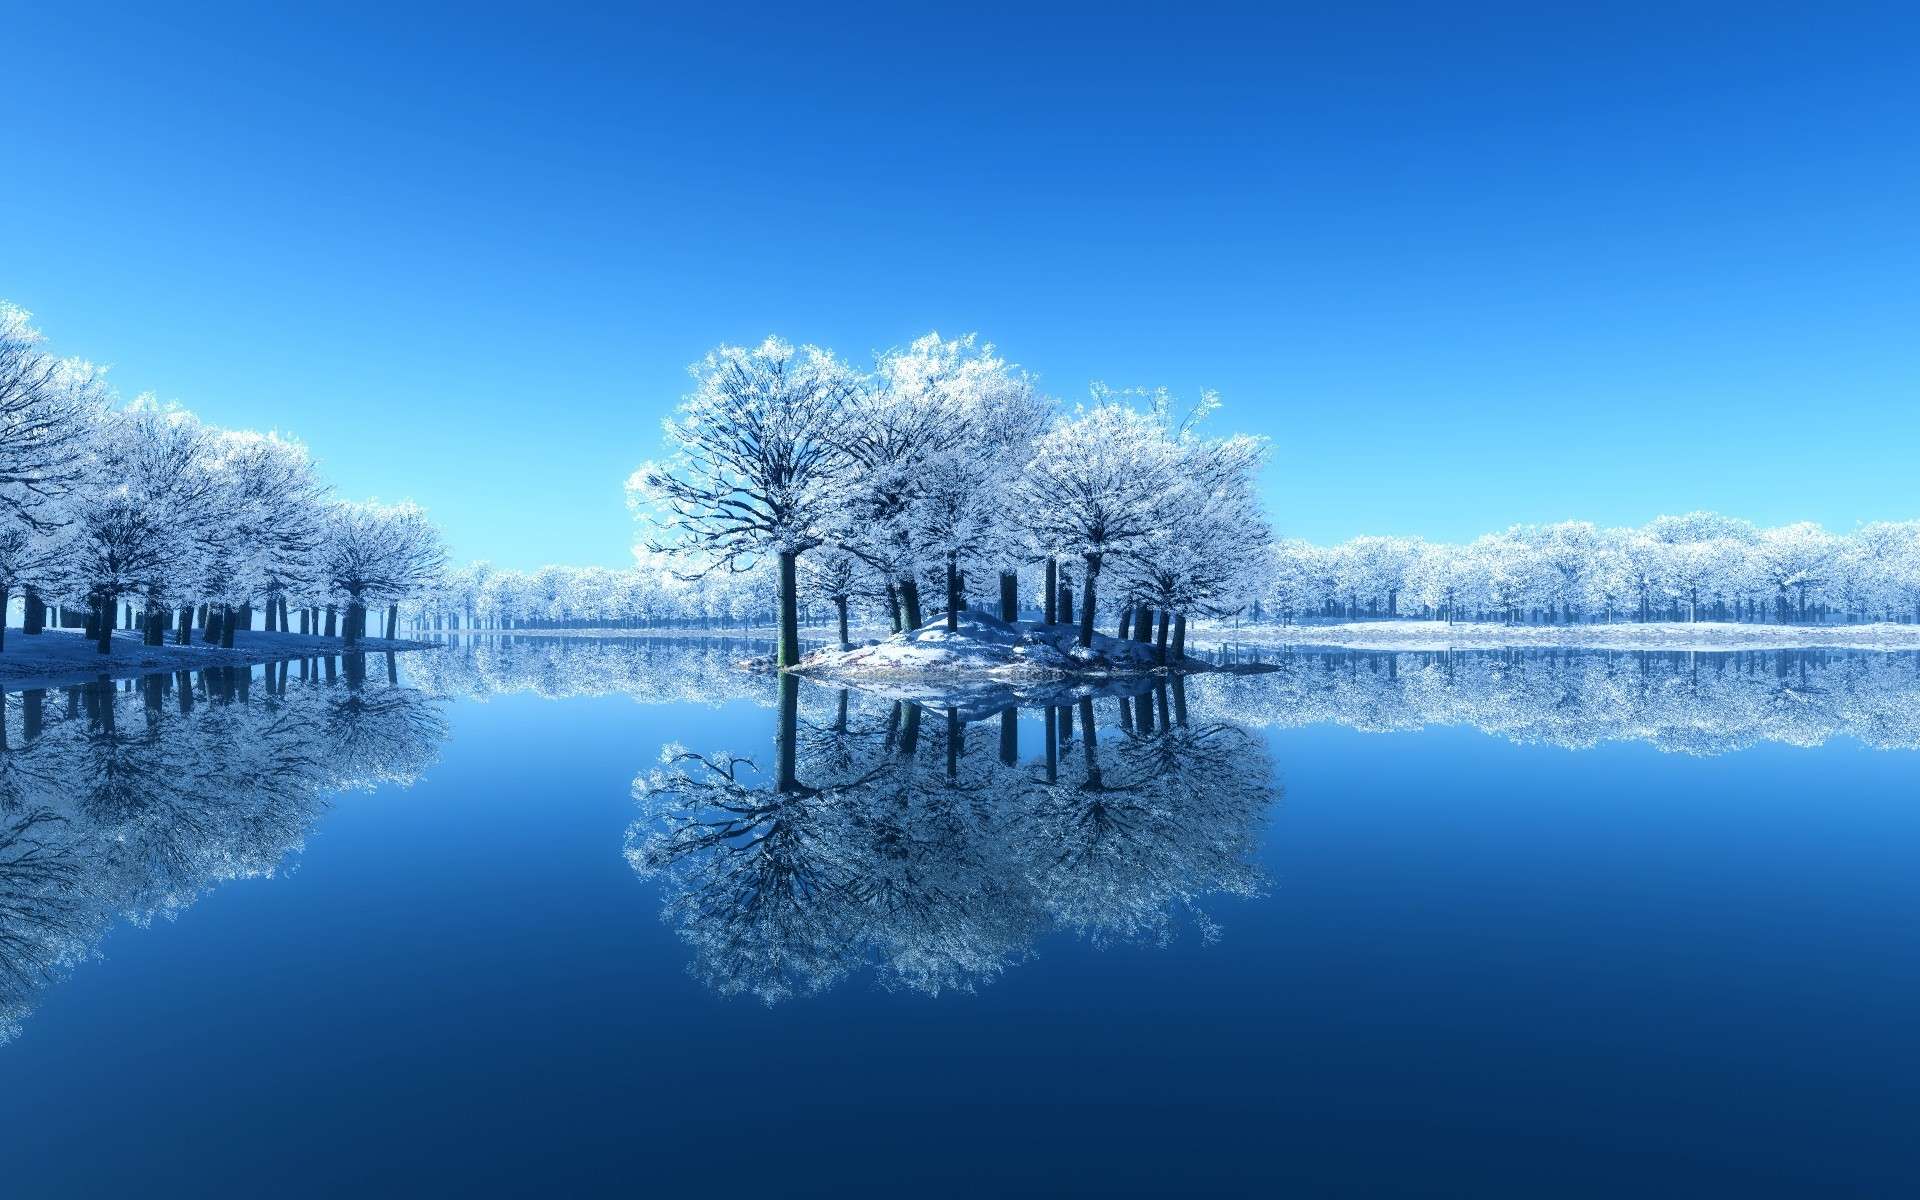 Beautiful winter HD wallpaper with a white winter landscape with a lake and  a little island, and trees with cold white snow.